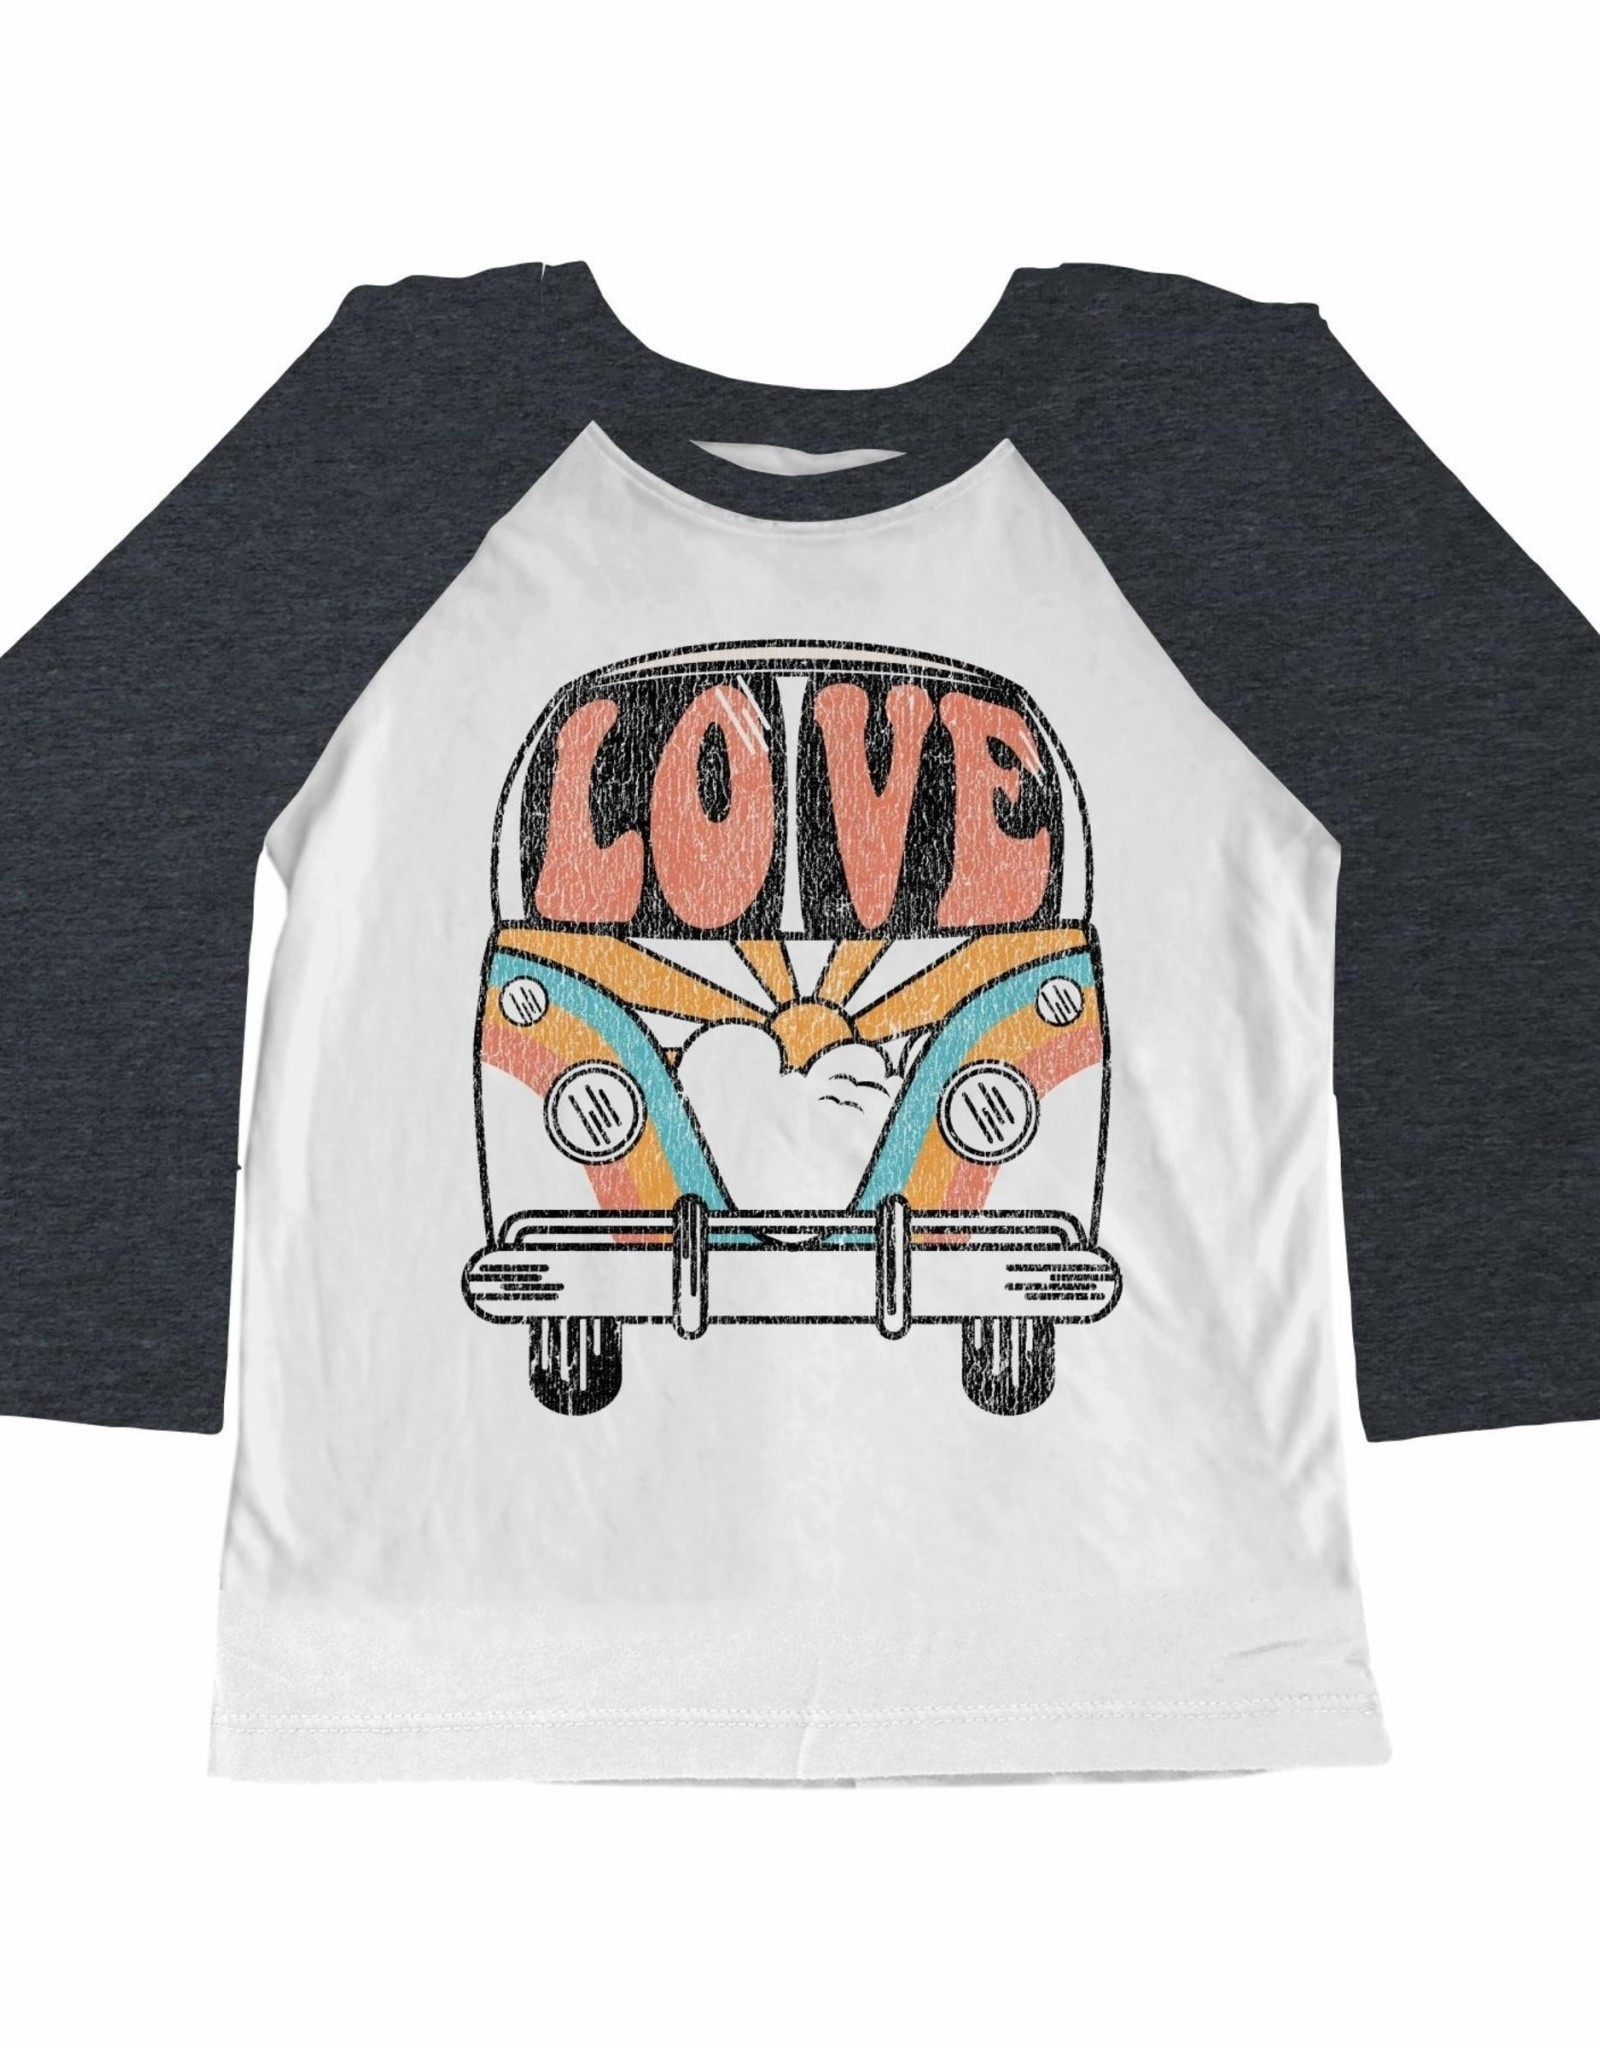 Tiny Whales love bus raglan